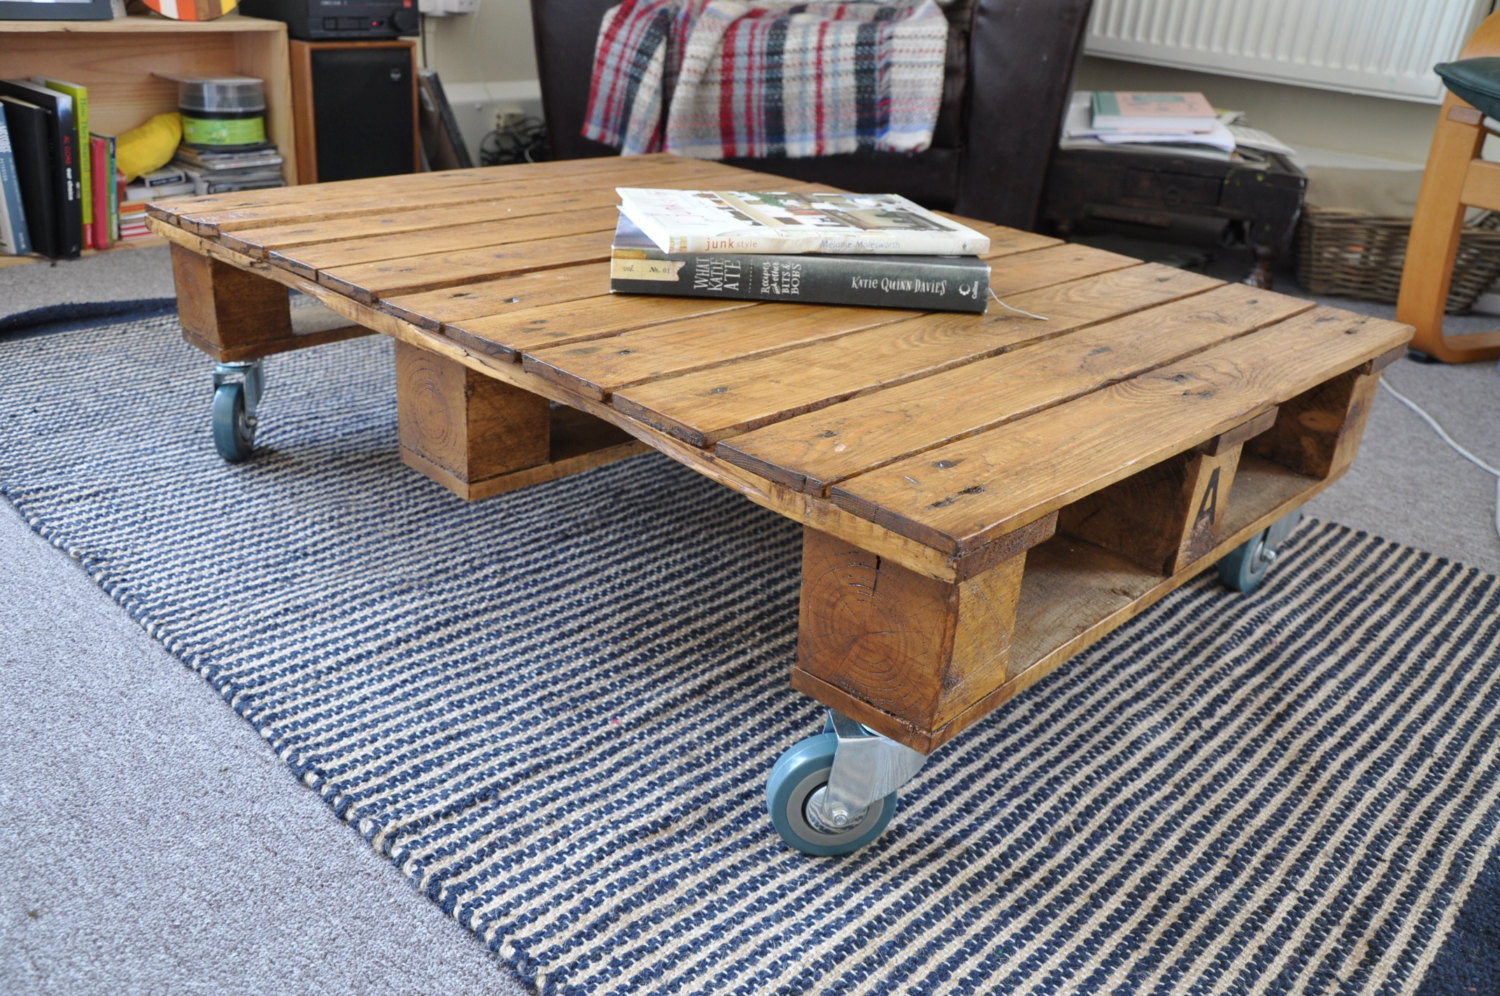 18 useful and easy diy ideas to repurpose old pallet wood for Fabrication de meuble en bois de palette